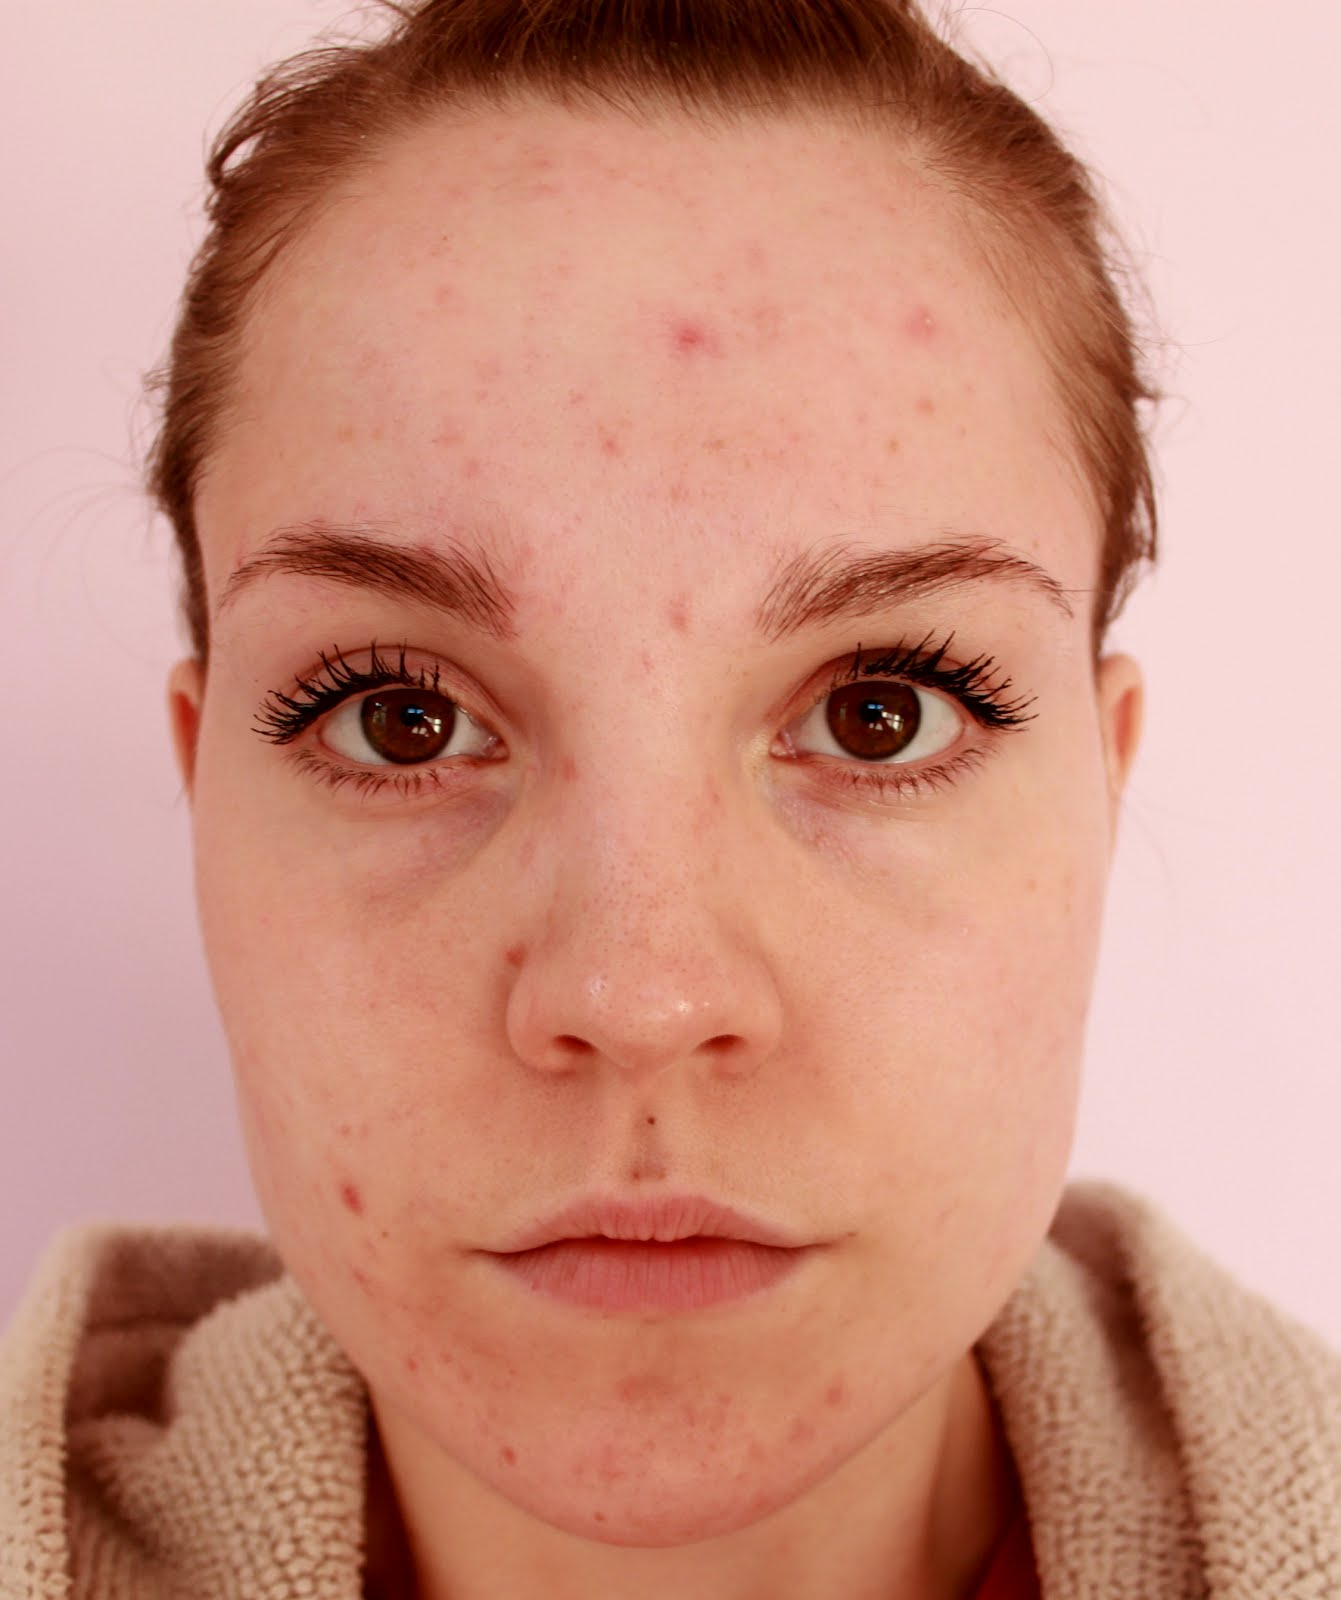 Image Result For Tea Tree Oil For Acne Scars On Face